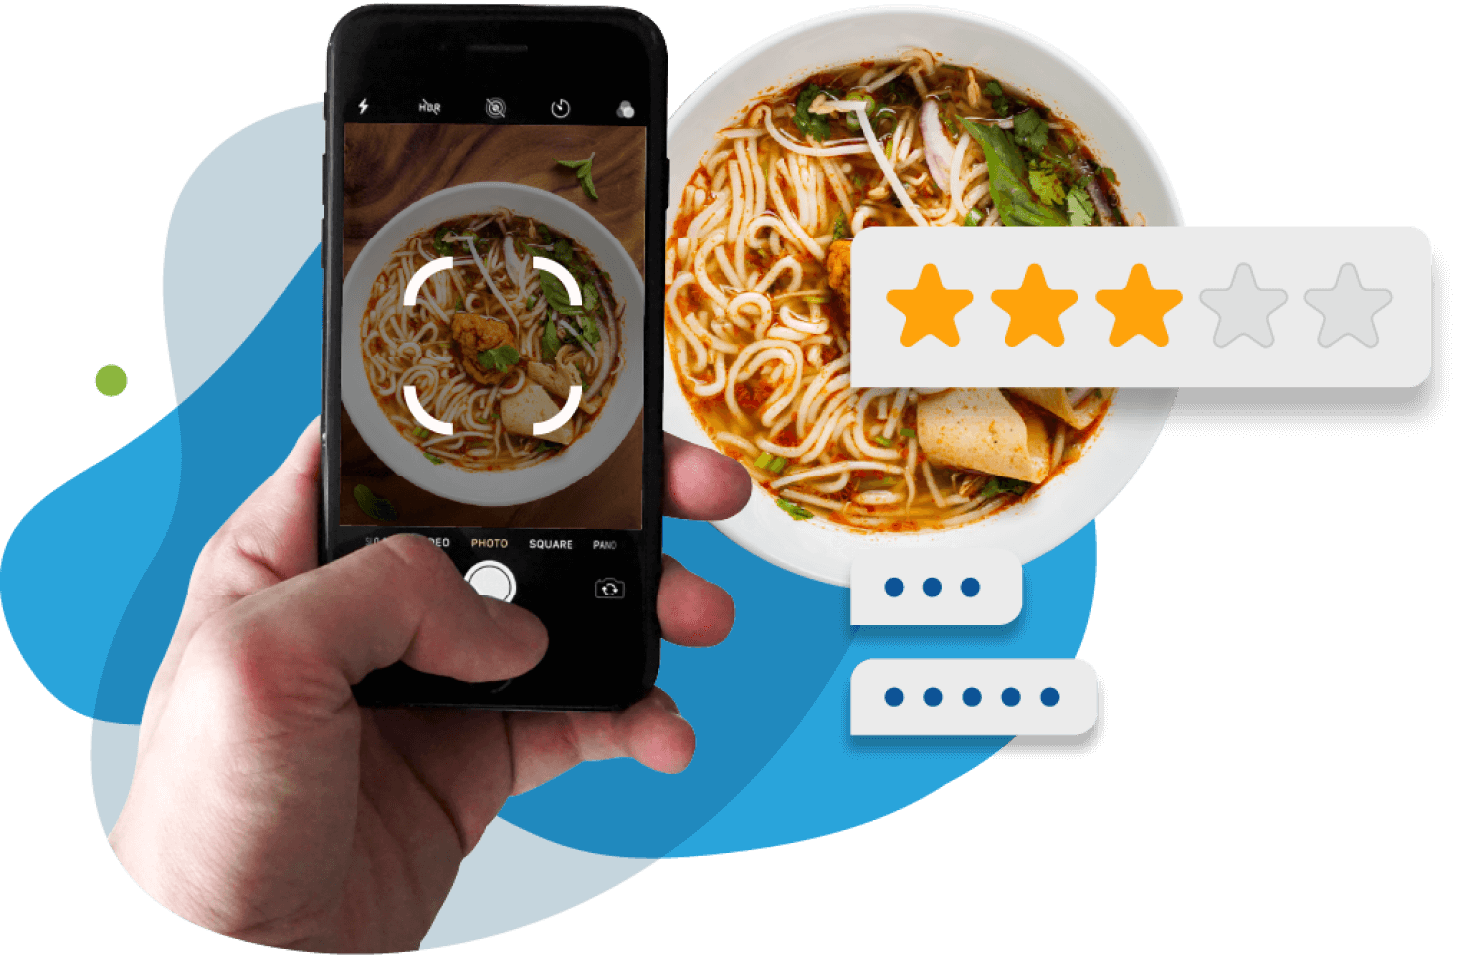 Person taking a photo of noodle meal with his phone with 3 out of 5 star rating